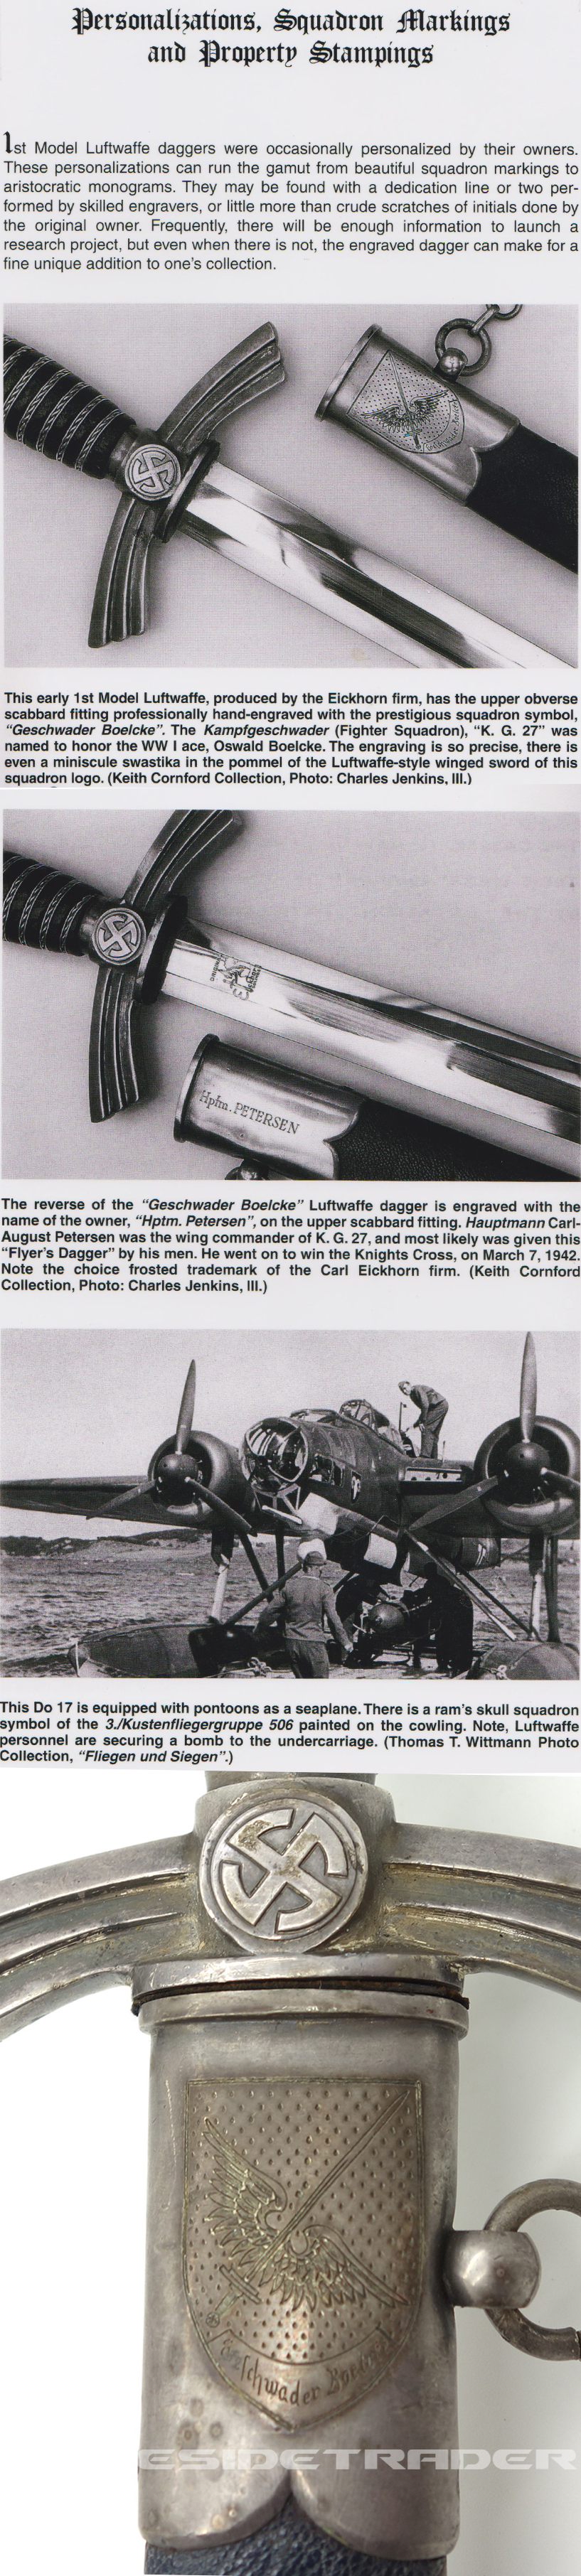 Personalized Published 1st Model Luftwaffe Dagger to a RK winner